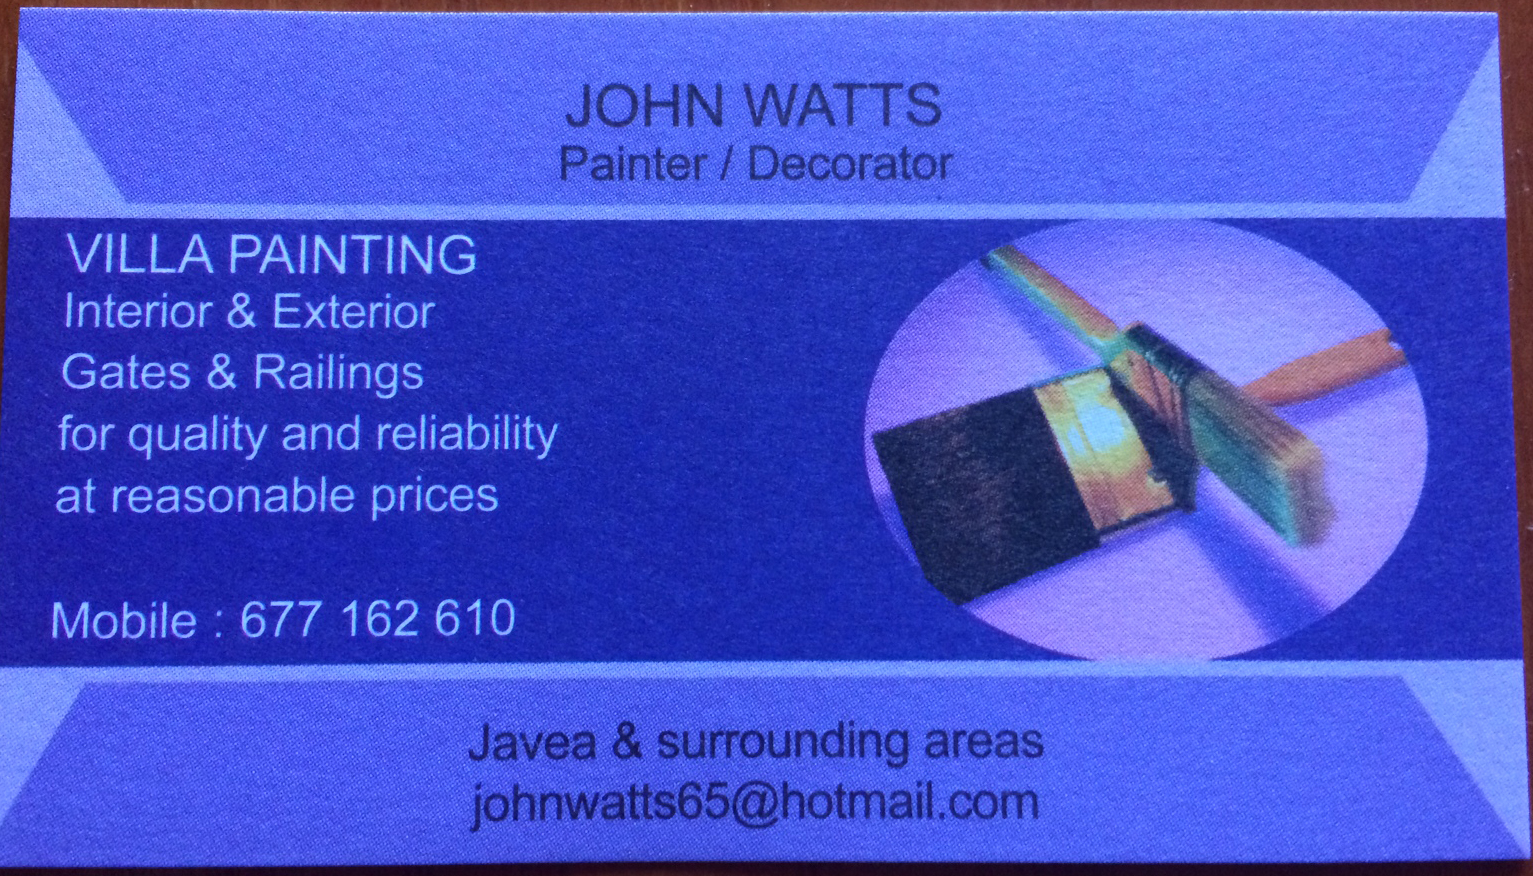 John Watts Painter & Decorator